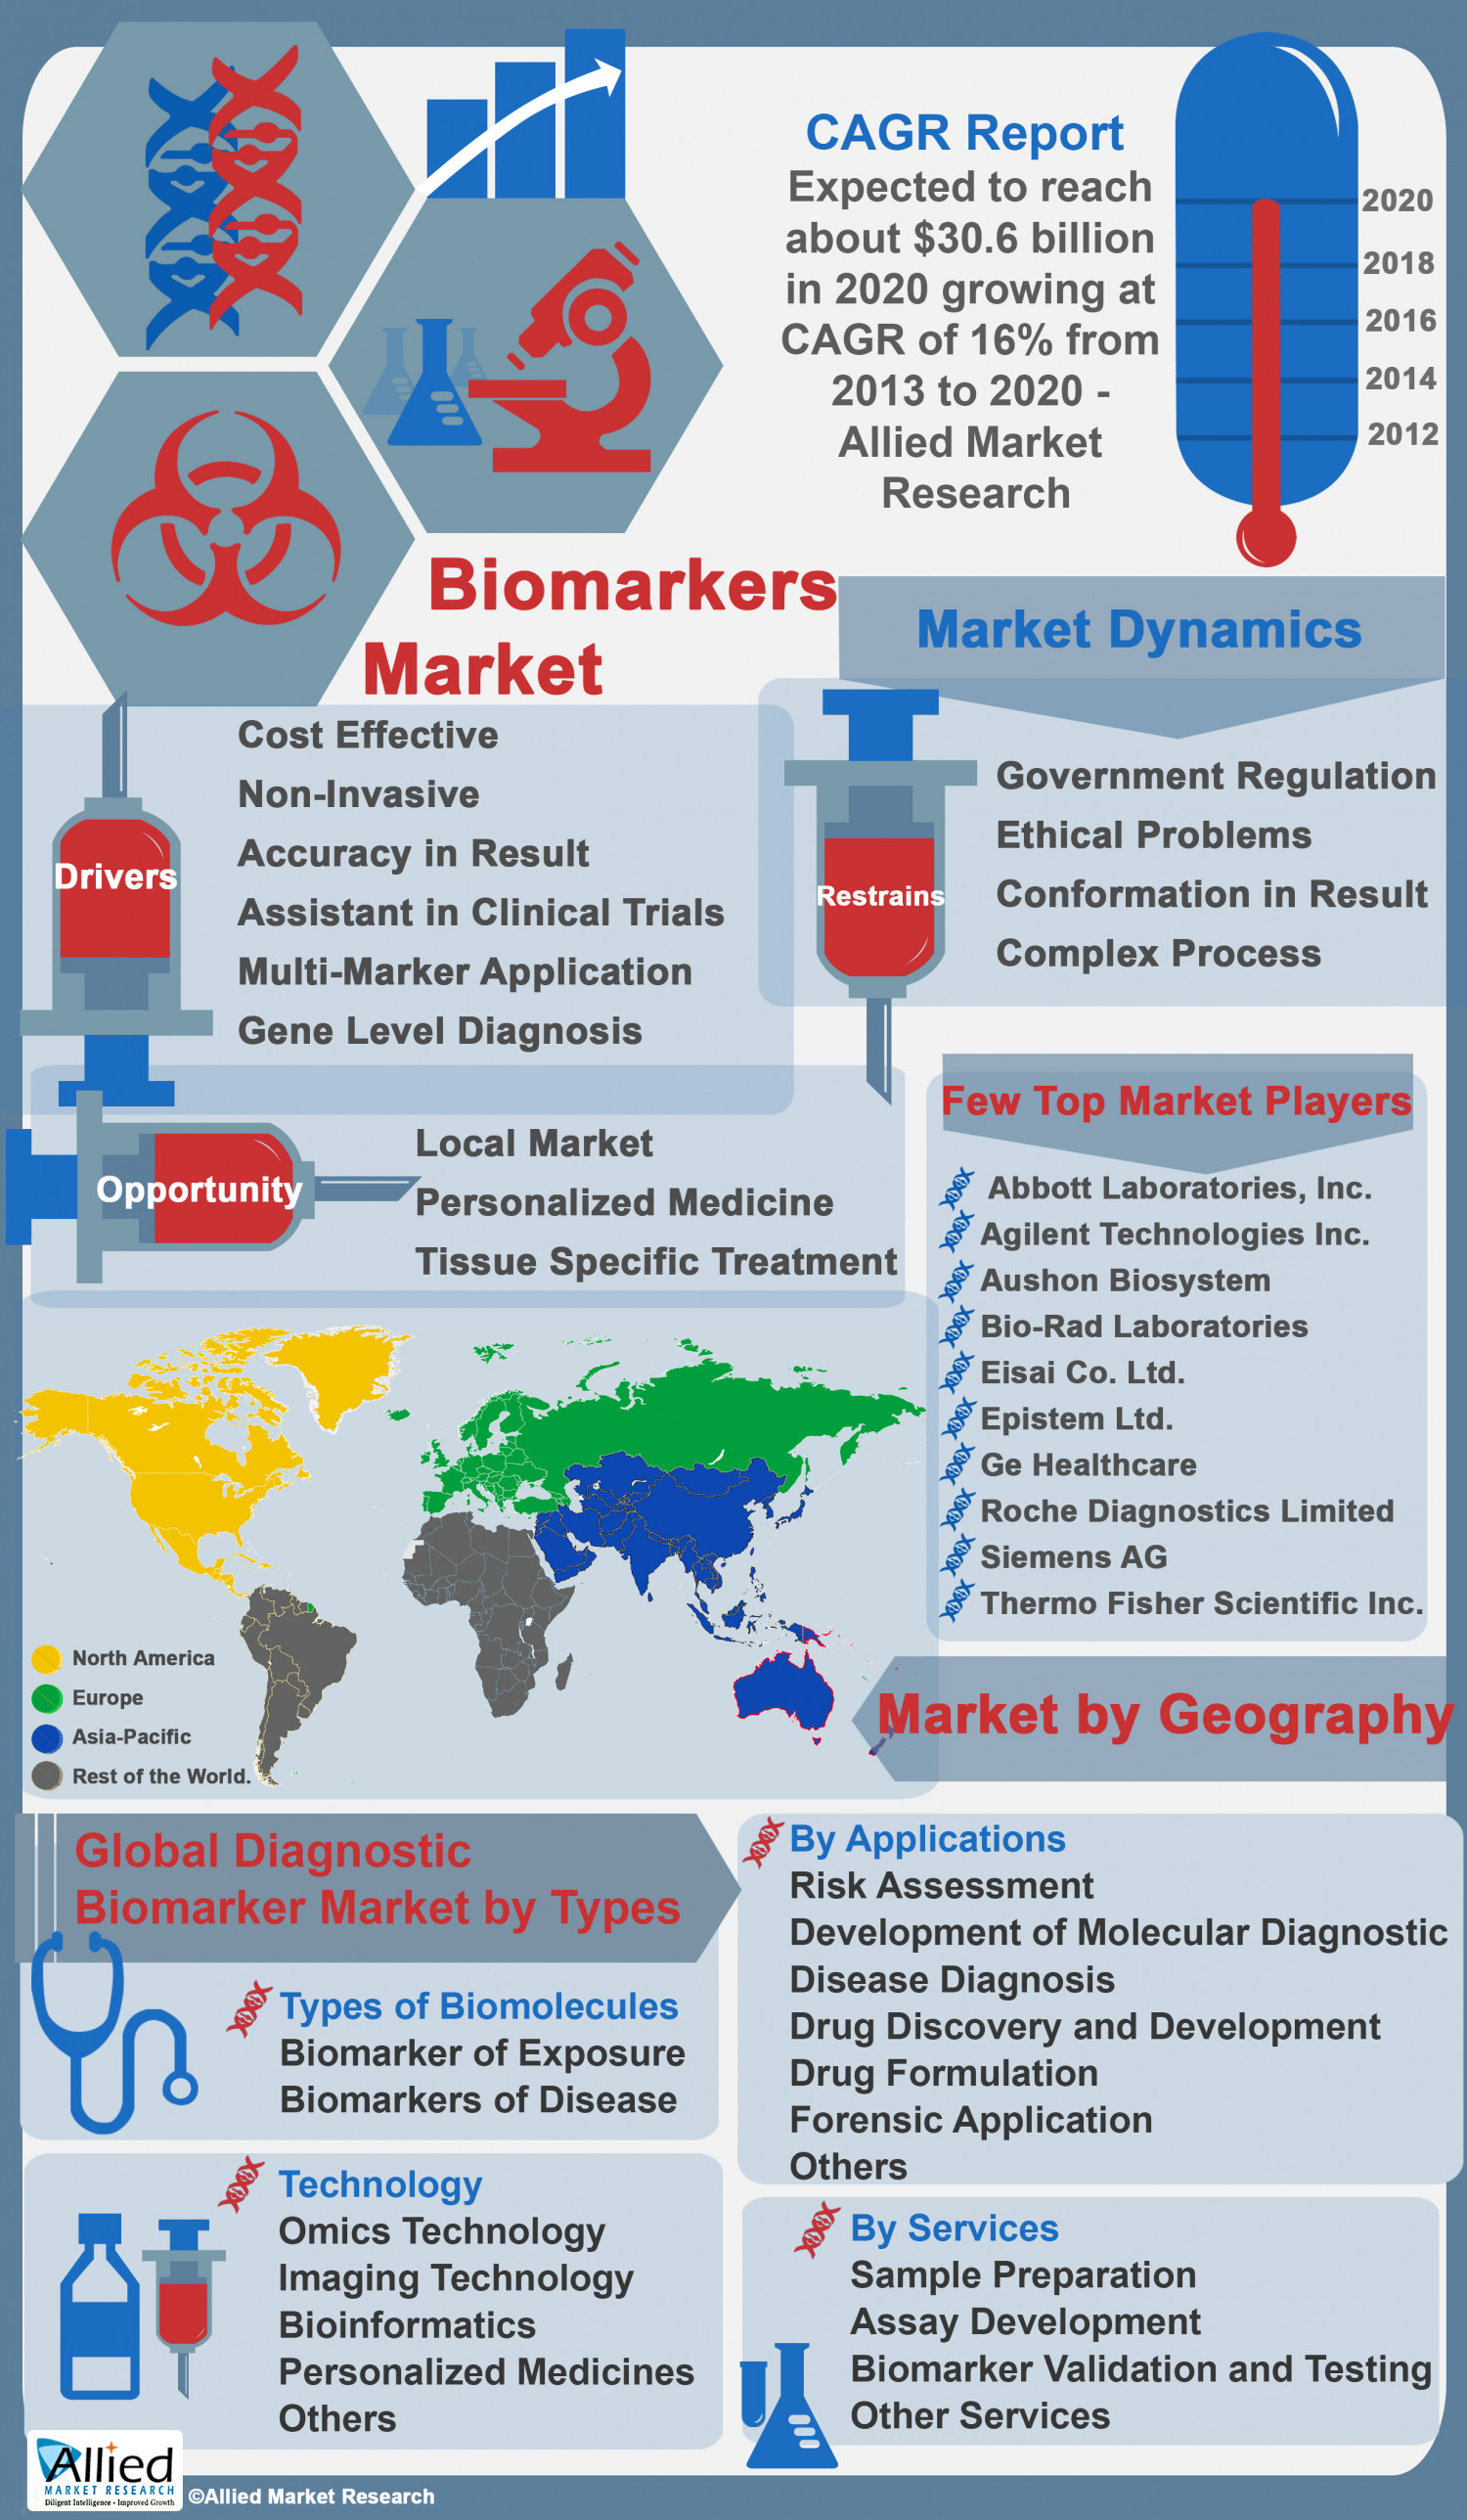 Biomarkers Market - - Global Industry Analysis, Emerging Technologies, Competitive Intelligence, Growth Trends, Size, Share, Opportunities and Forecast, 2013 - 2020 Infographic